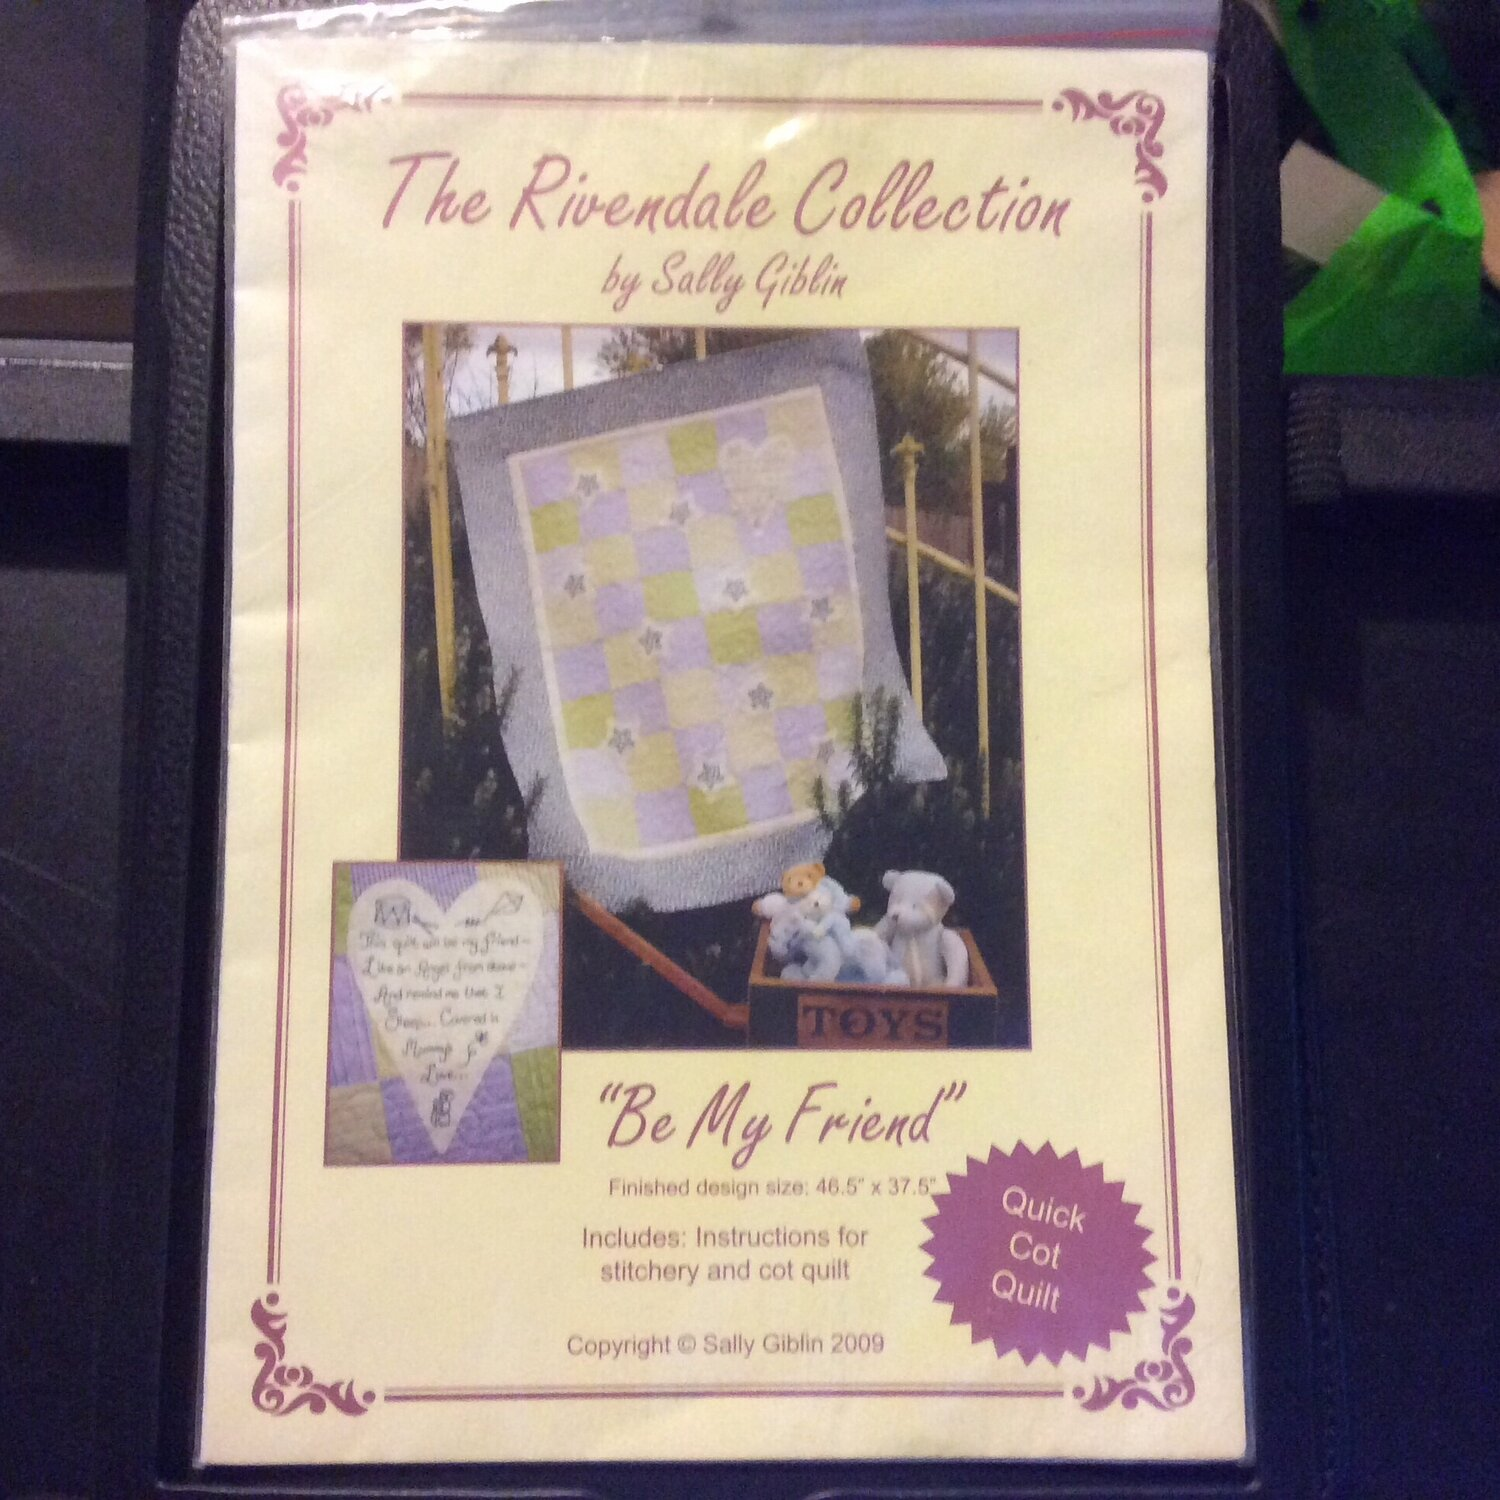 The Rivendale Collection - Be My Friend Cot Quilt